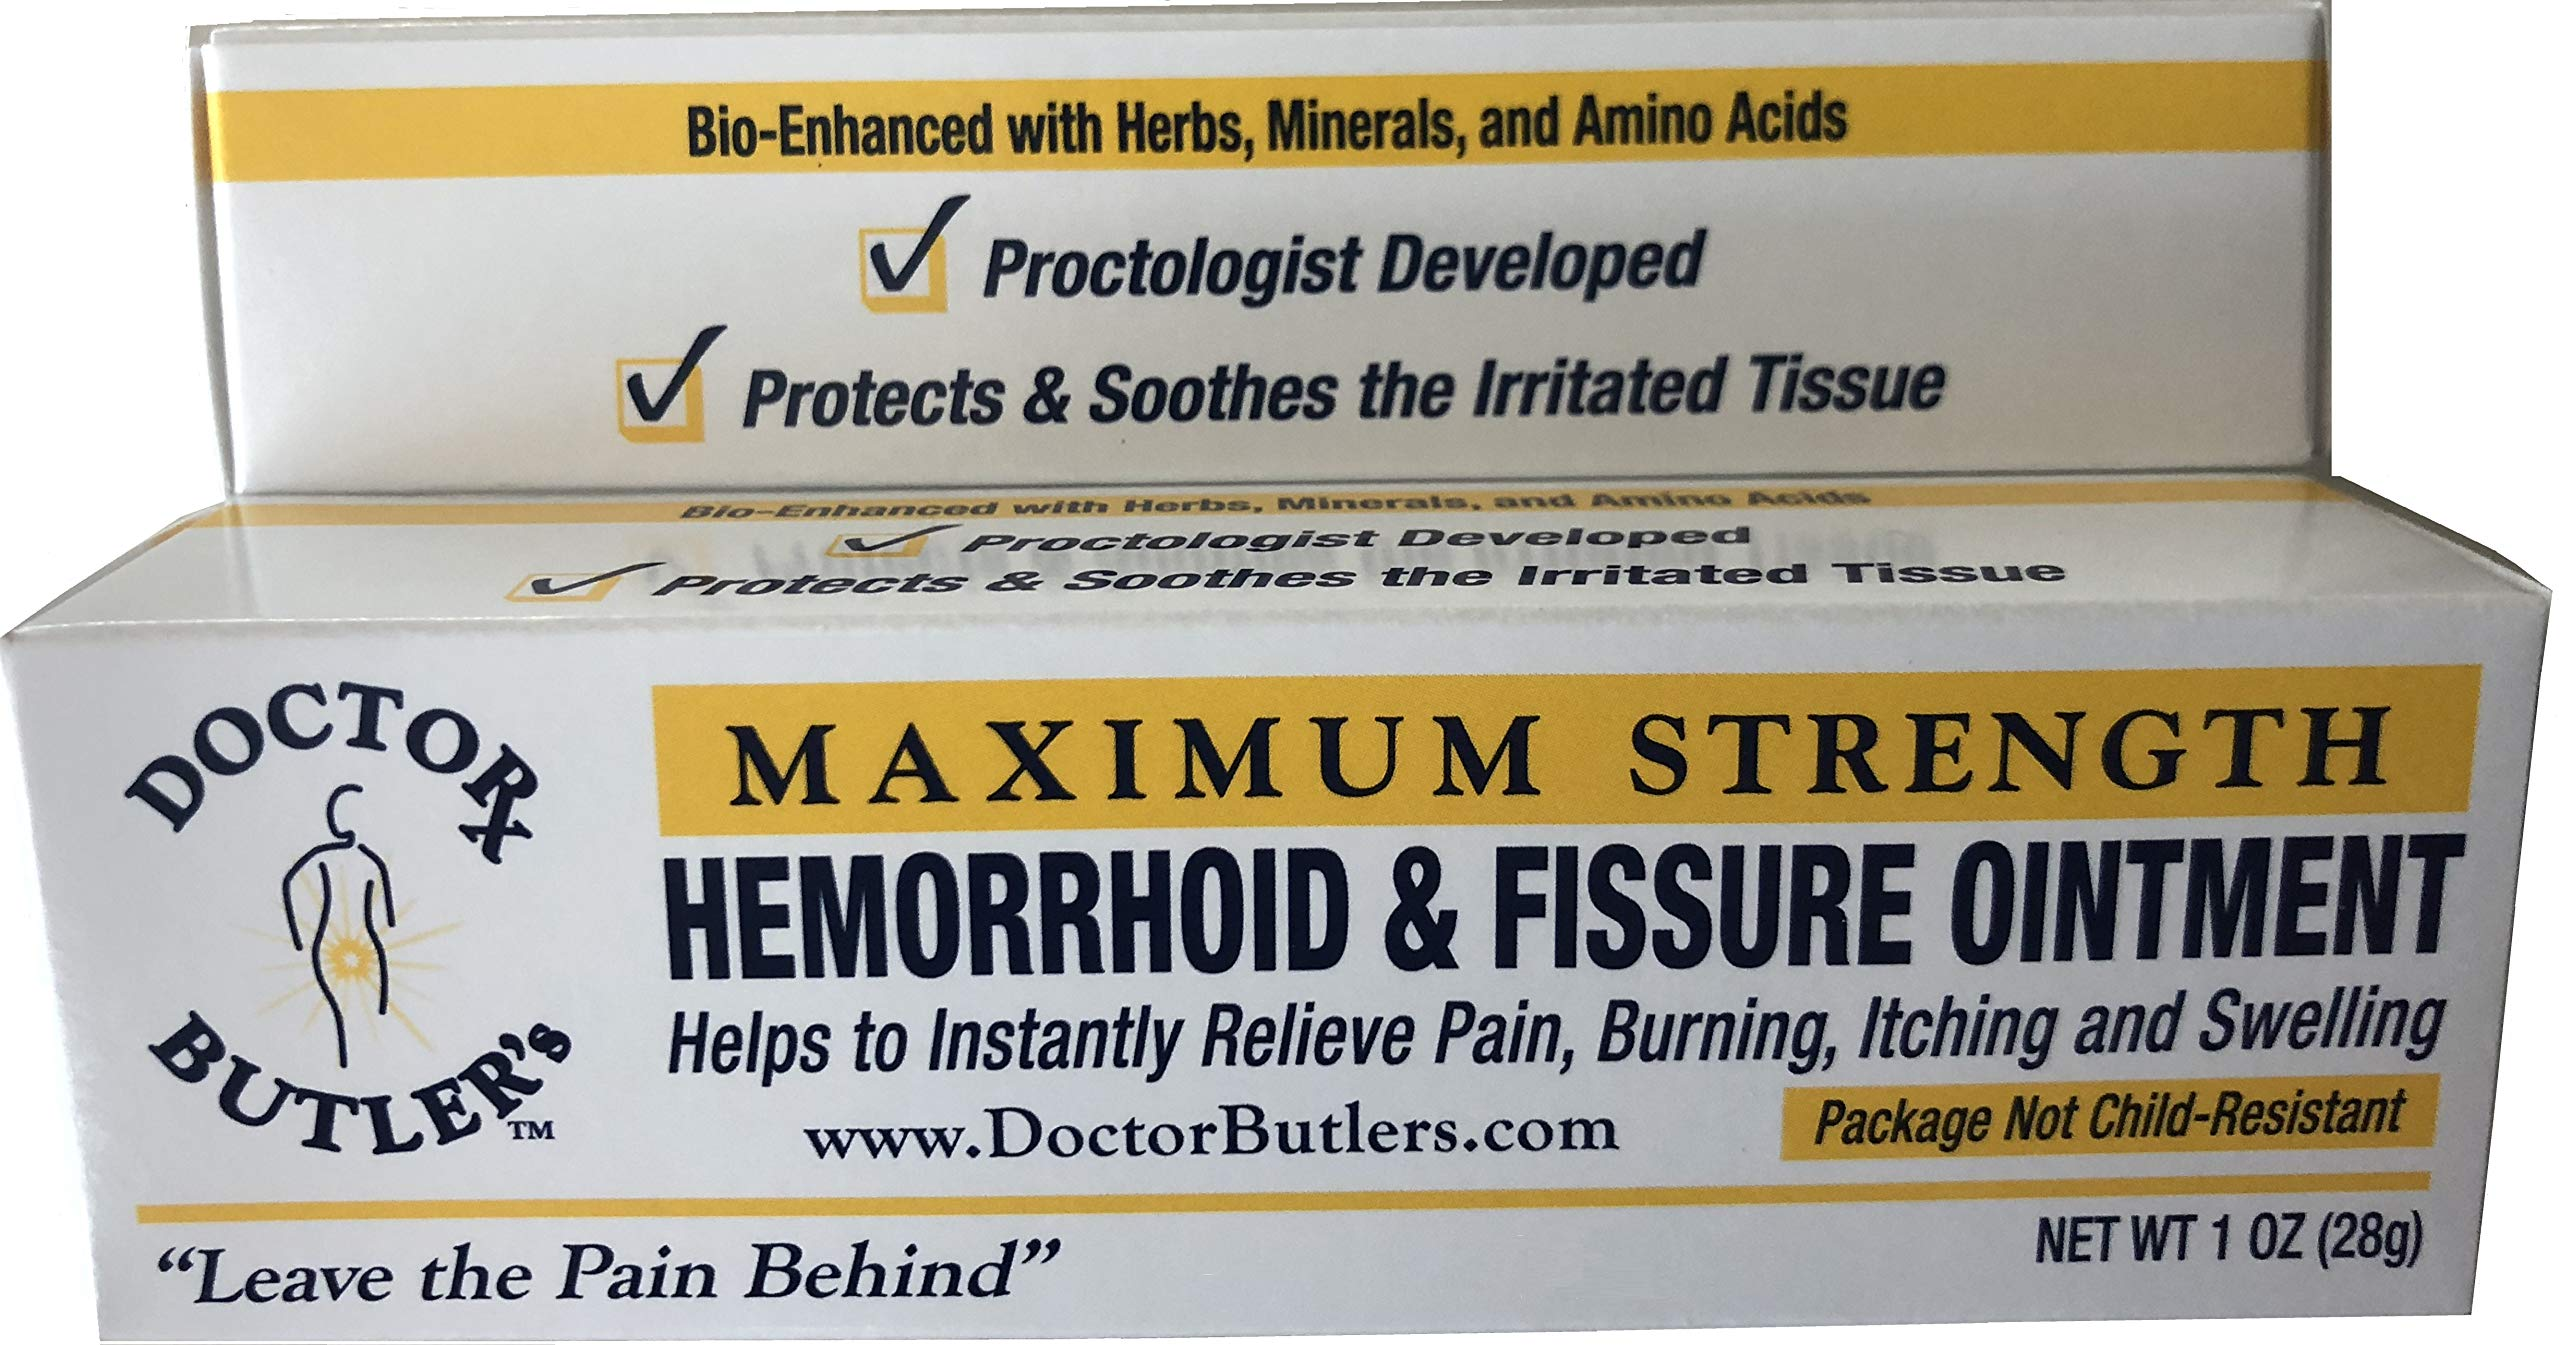 Doctor Butler's Hemorrhoid & Fissure Ointment...FDA Approved Relief & Healing Formula (also contains Organic Herbs, Minerals and Amino Acids) by Doctor Butler's